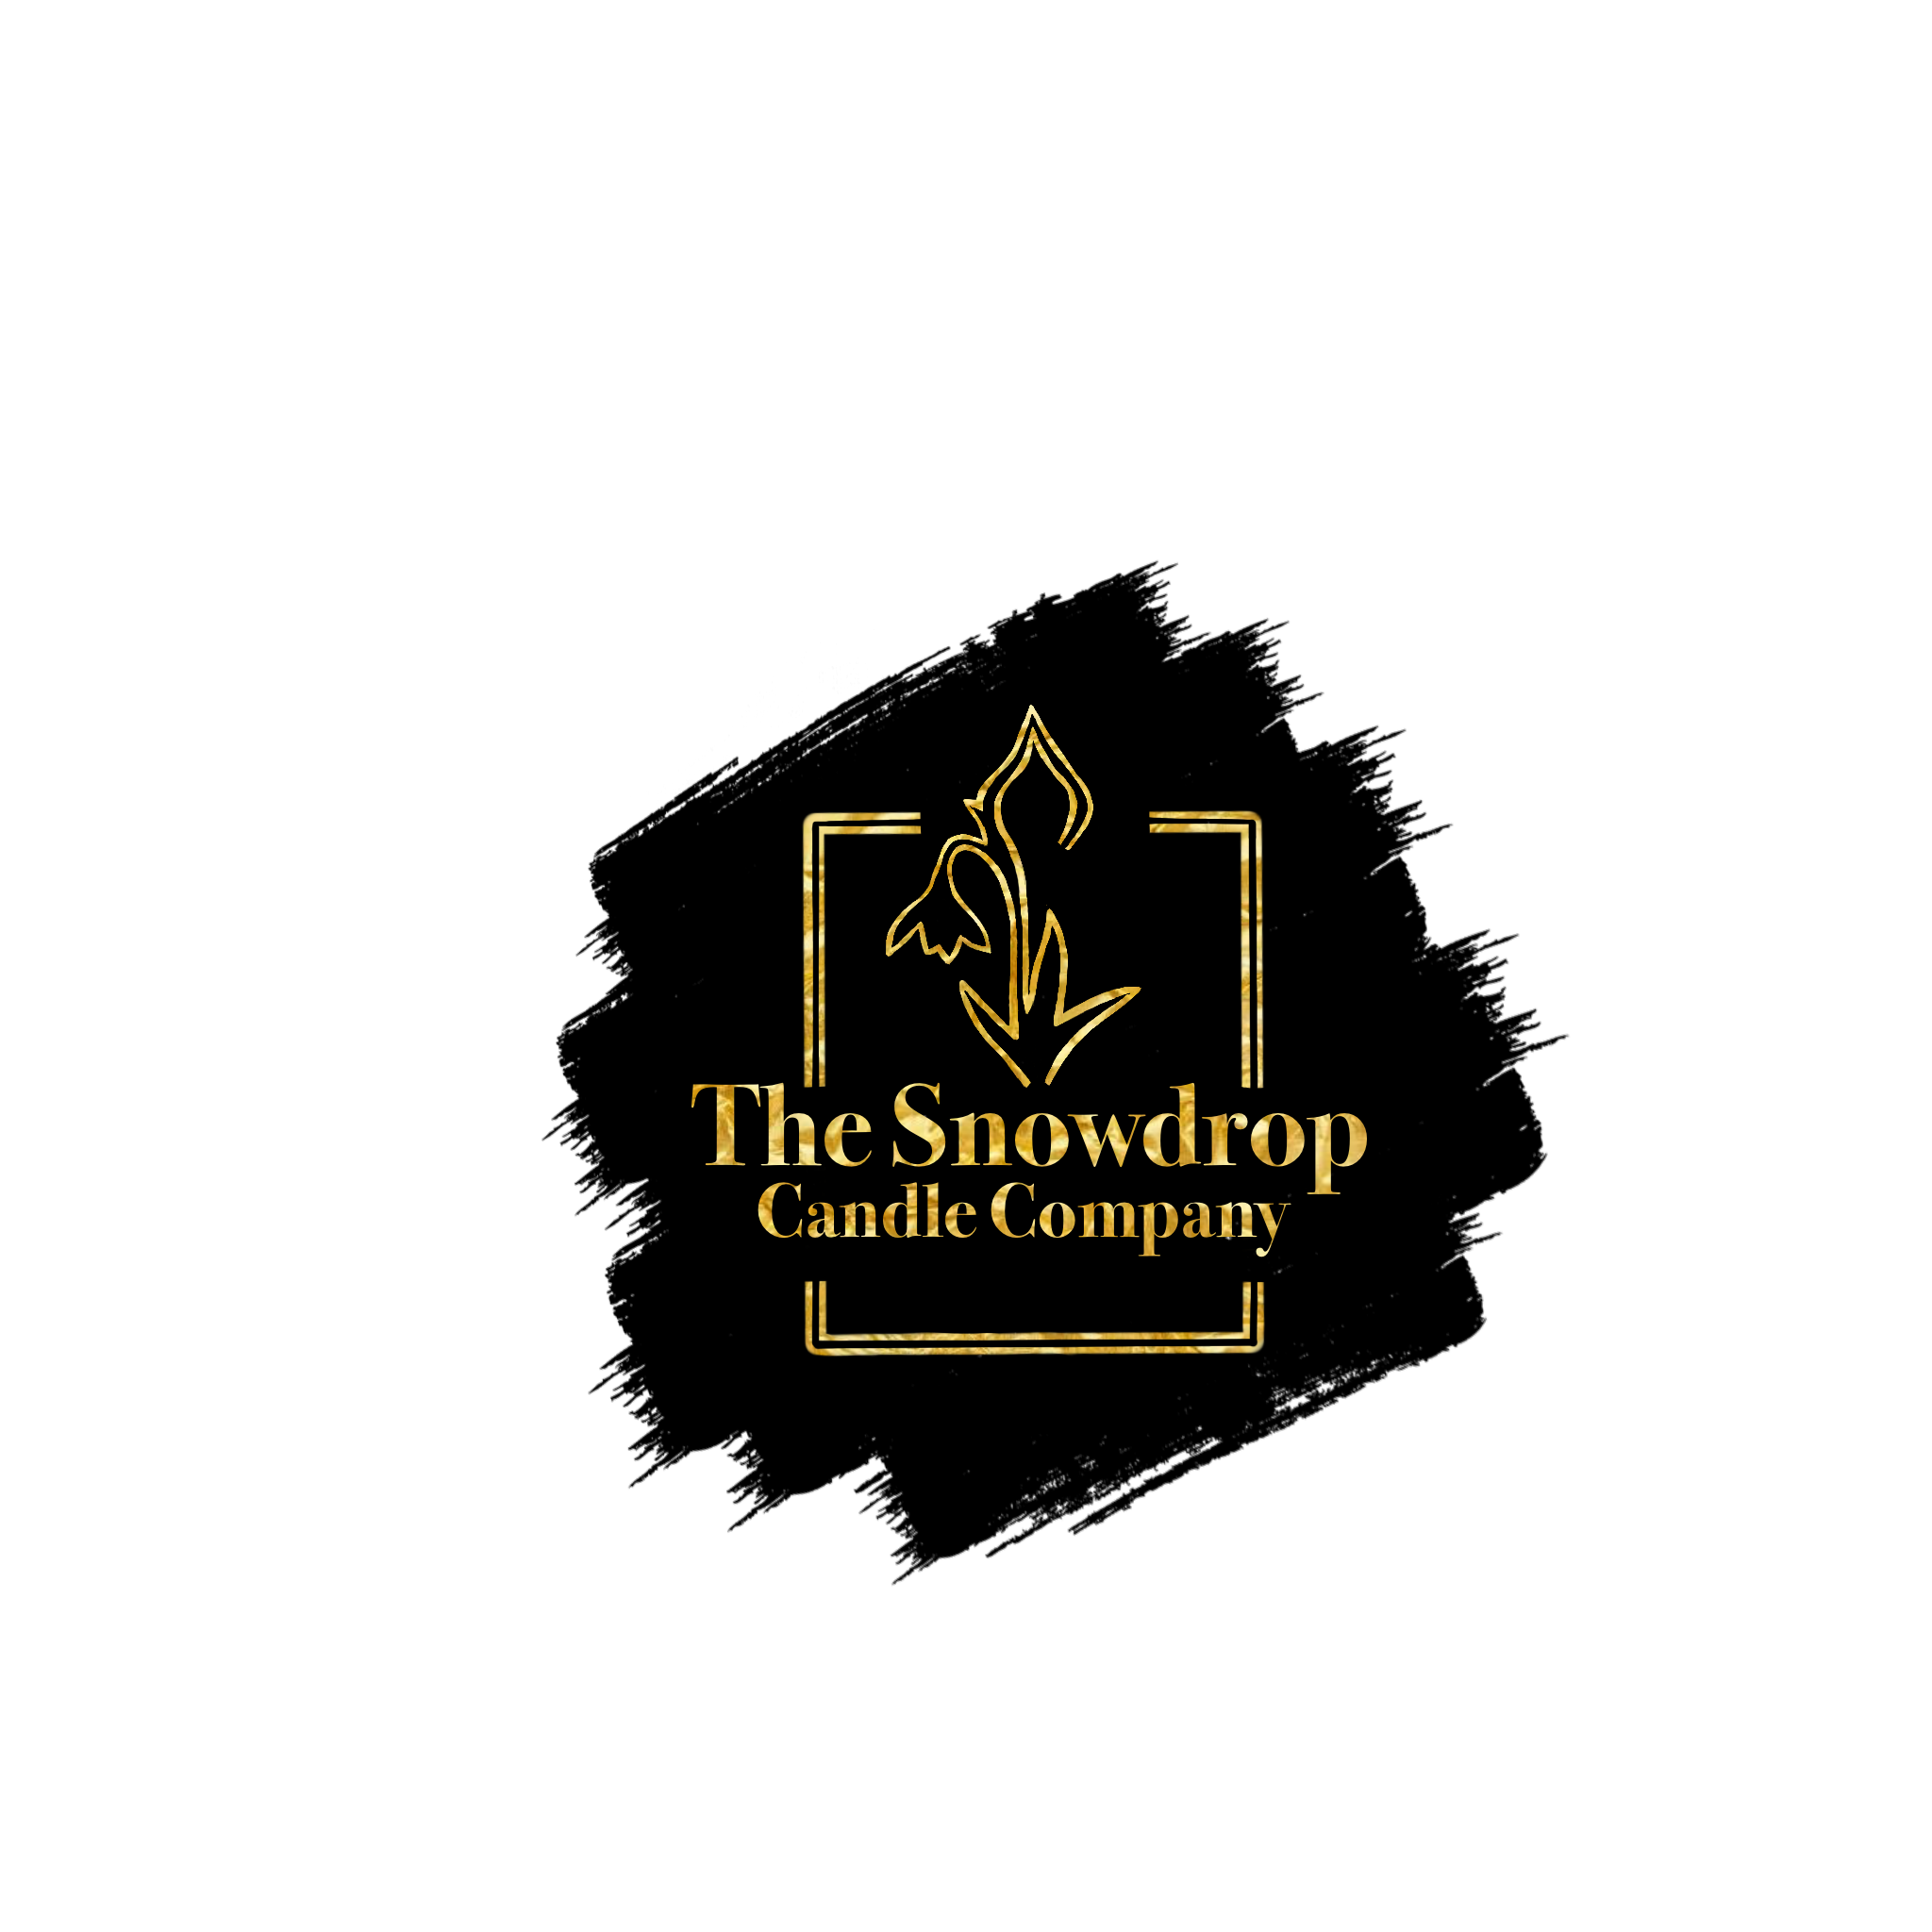 The Snowdrop Candle Company Logo